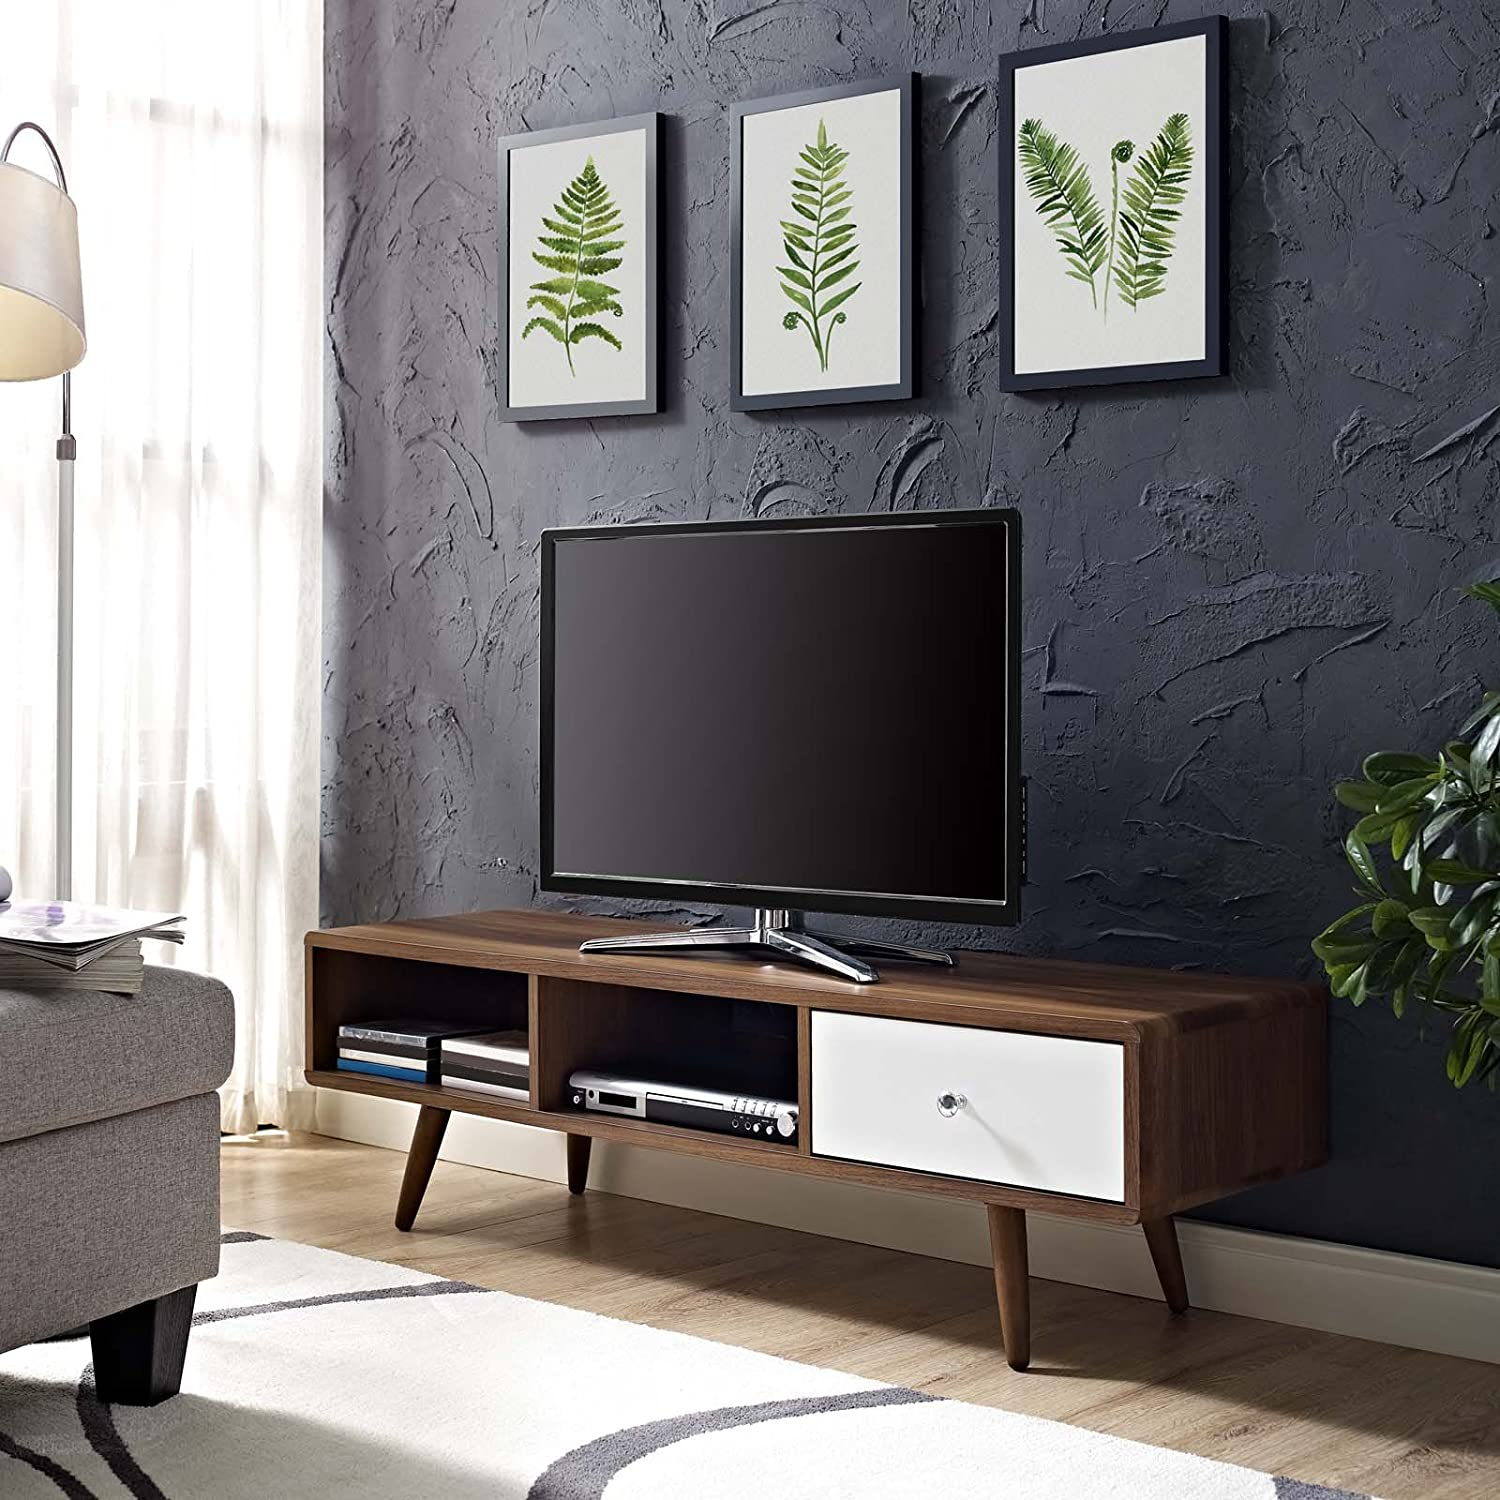 The Best Stylish Tv Stands That Don T Cost A Fortune In 2020 Spy